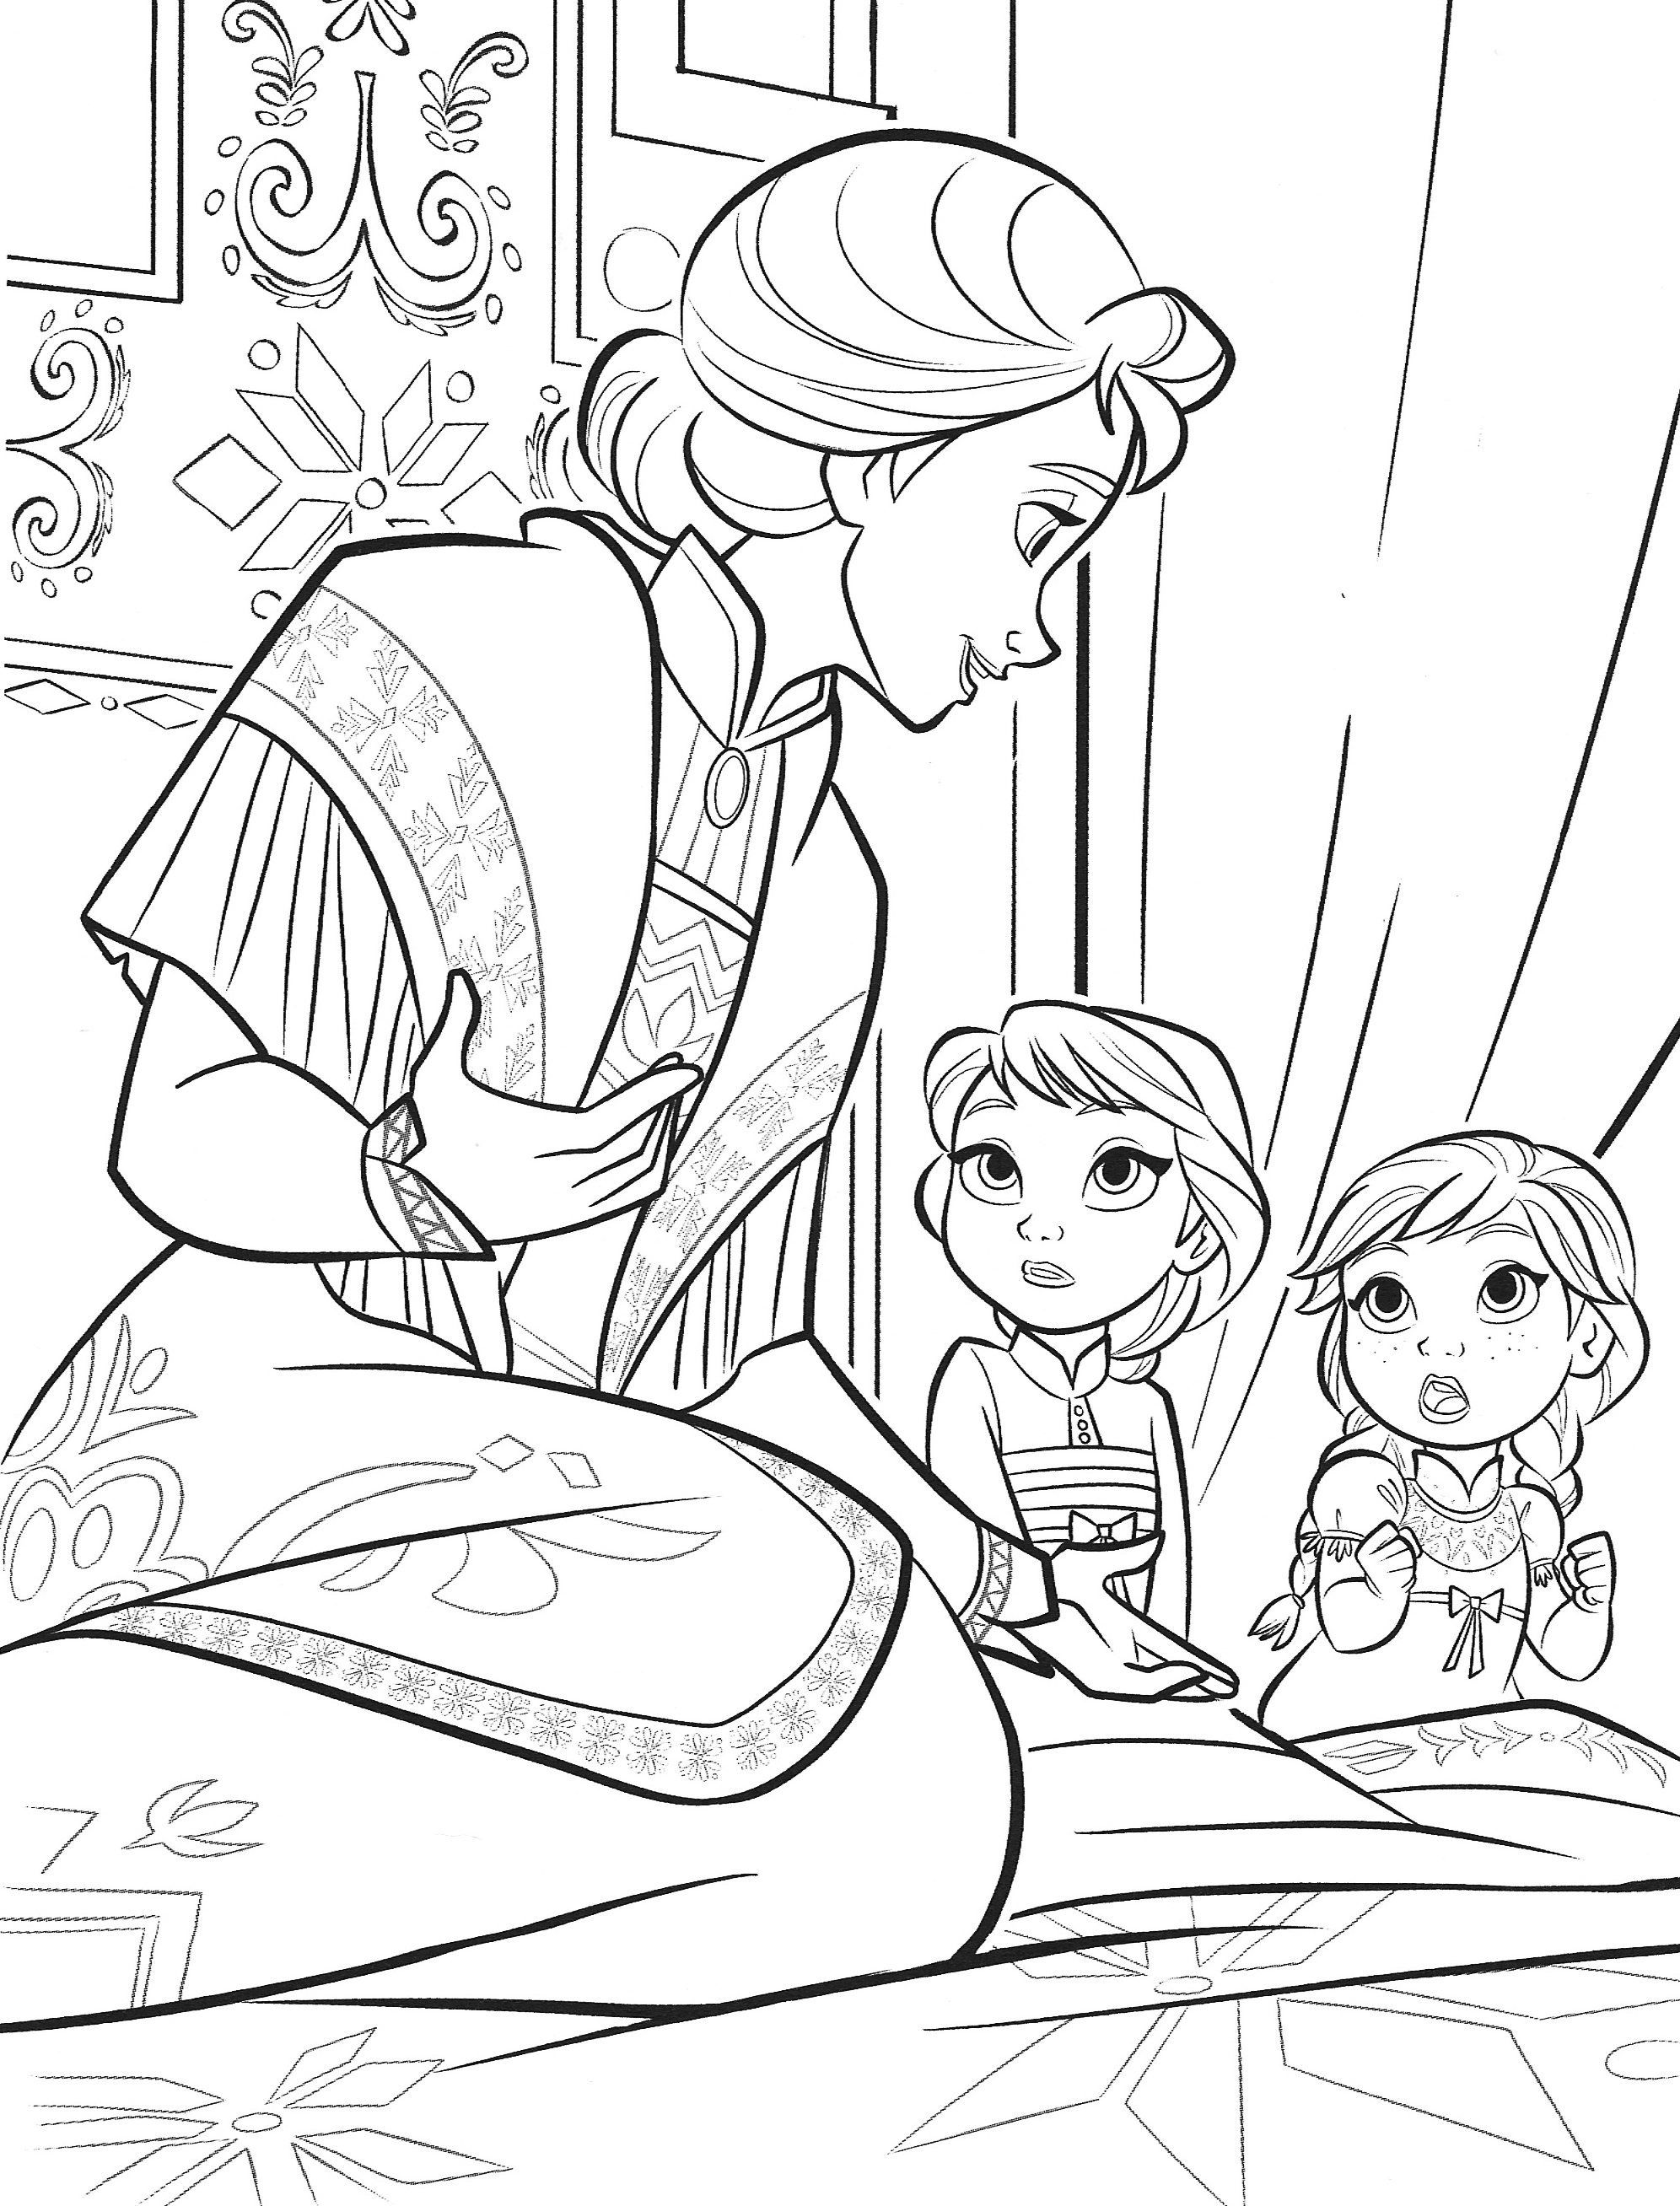 frozen 2 coloring pages anna frozen coloring pages coloring home coloring 2 pages frozen